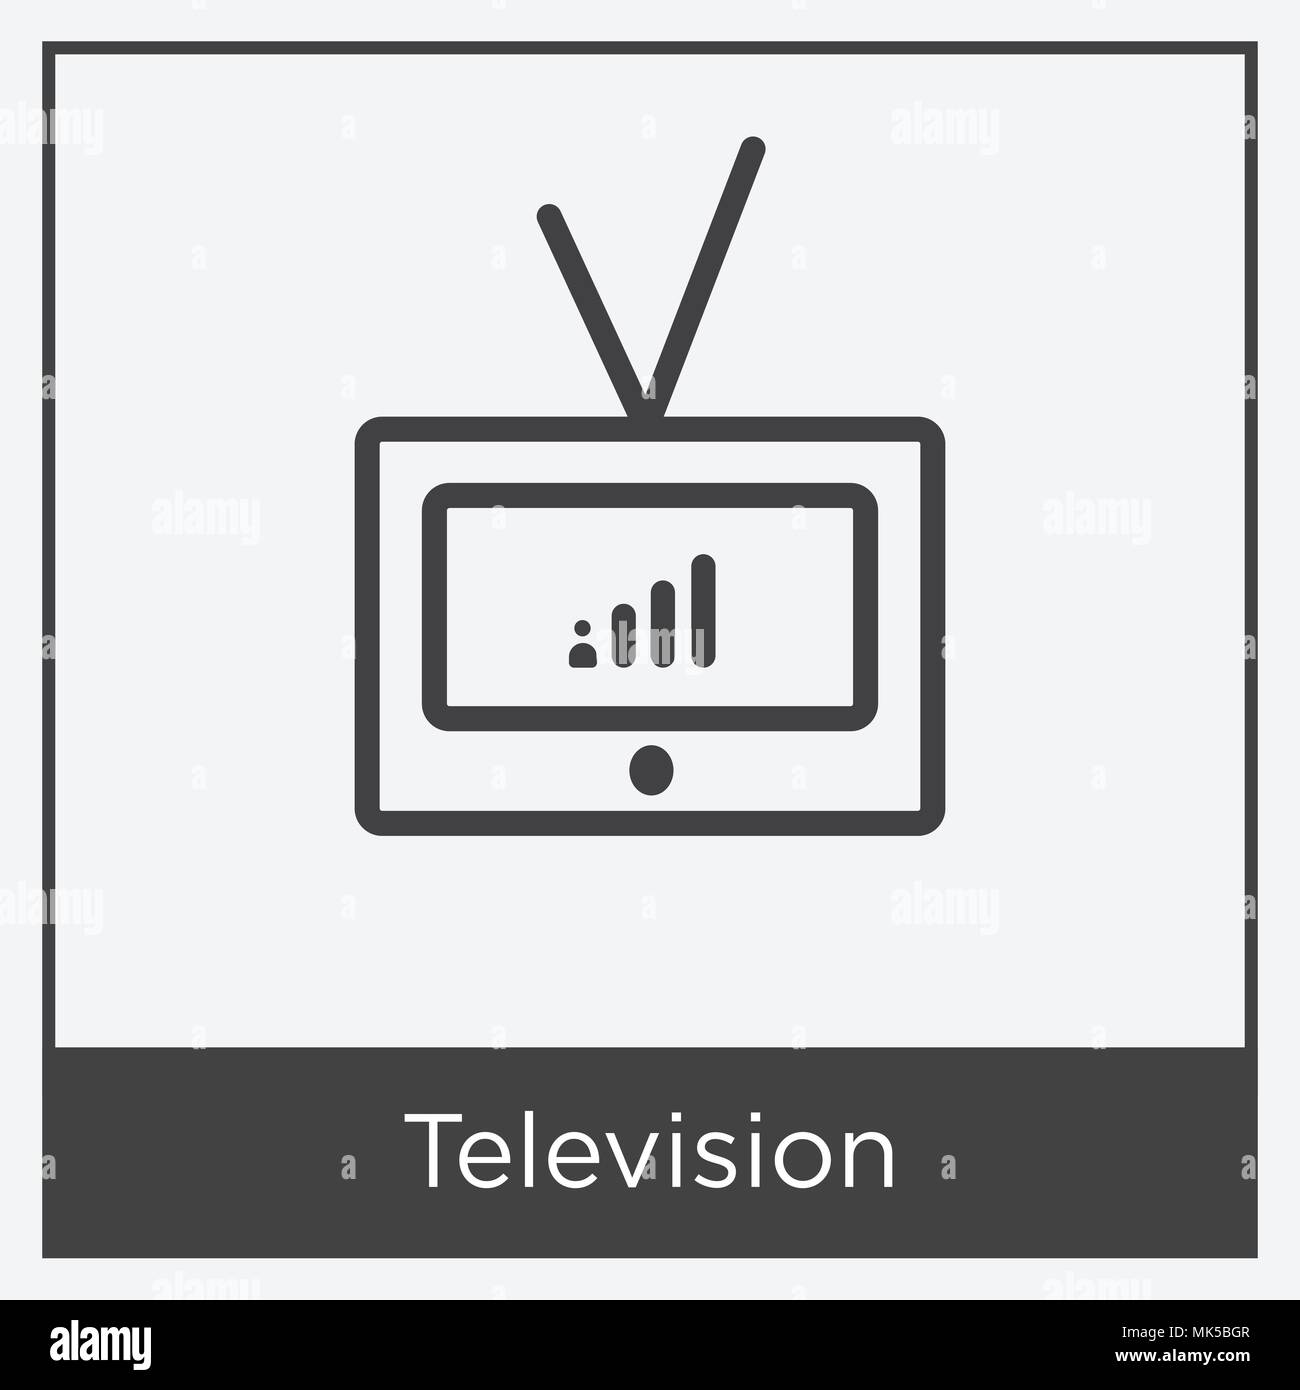 Television icon isolated on white background with gray frame, sign and symbol - Stock Image